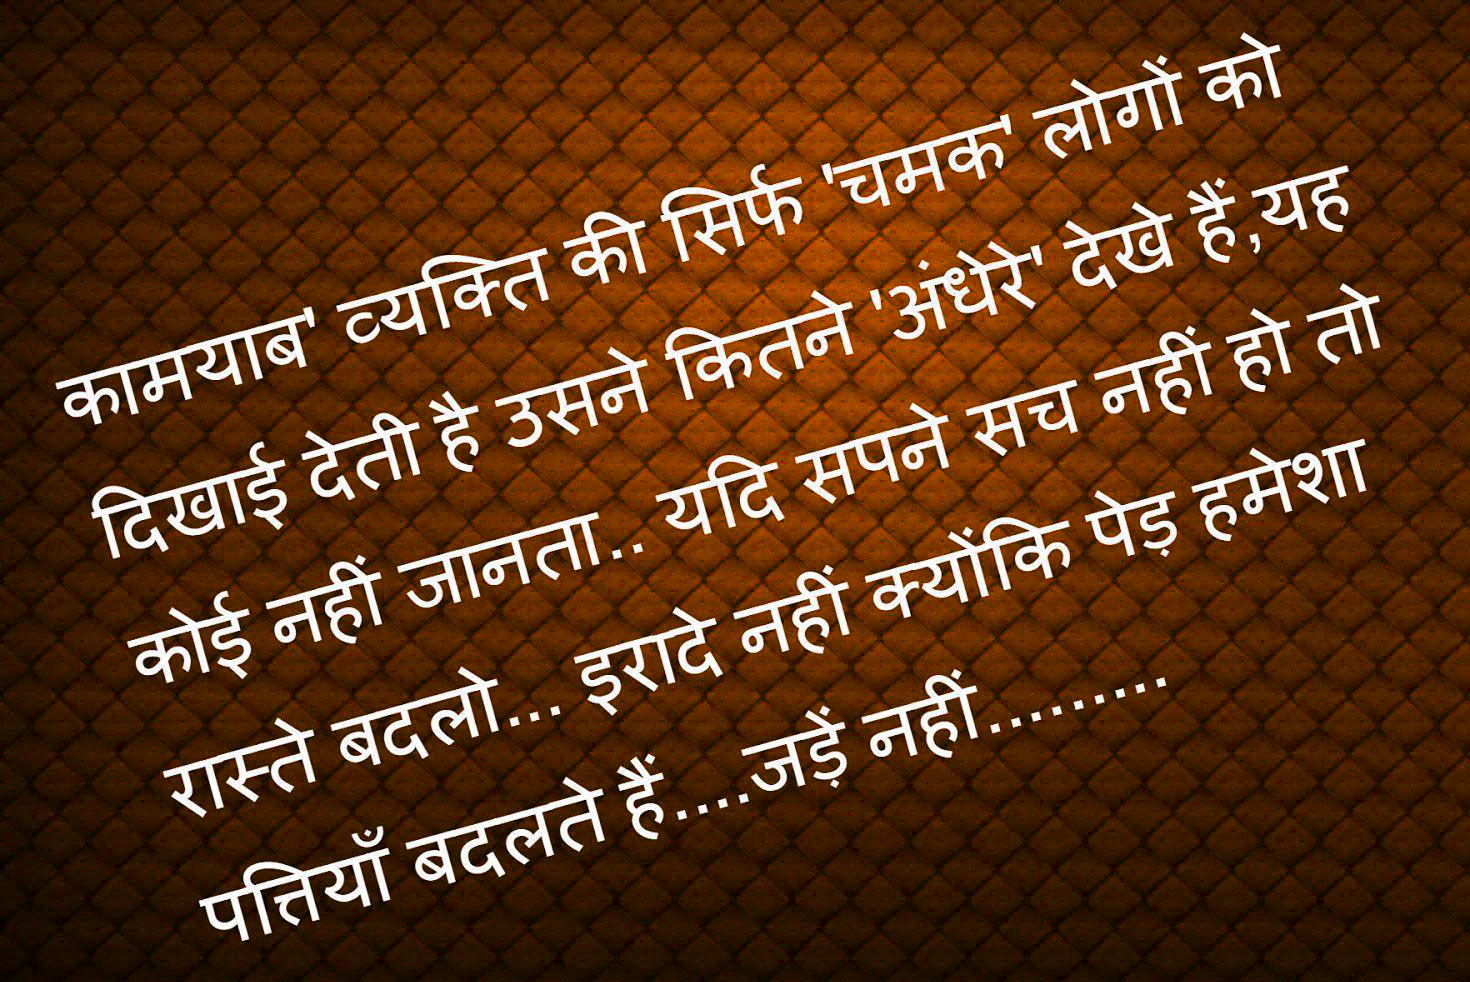 Romantic-Hindi-Shayari-Wallpaper-Pics-Download-17